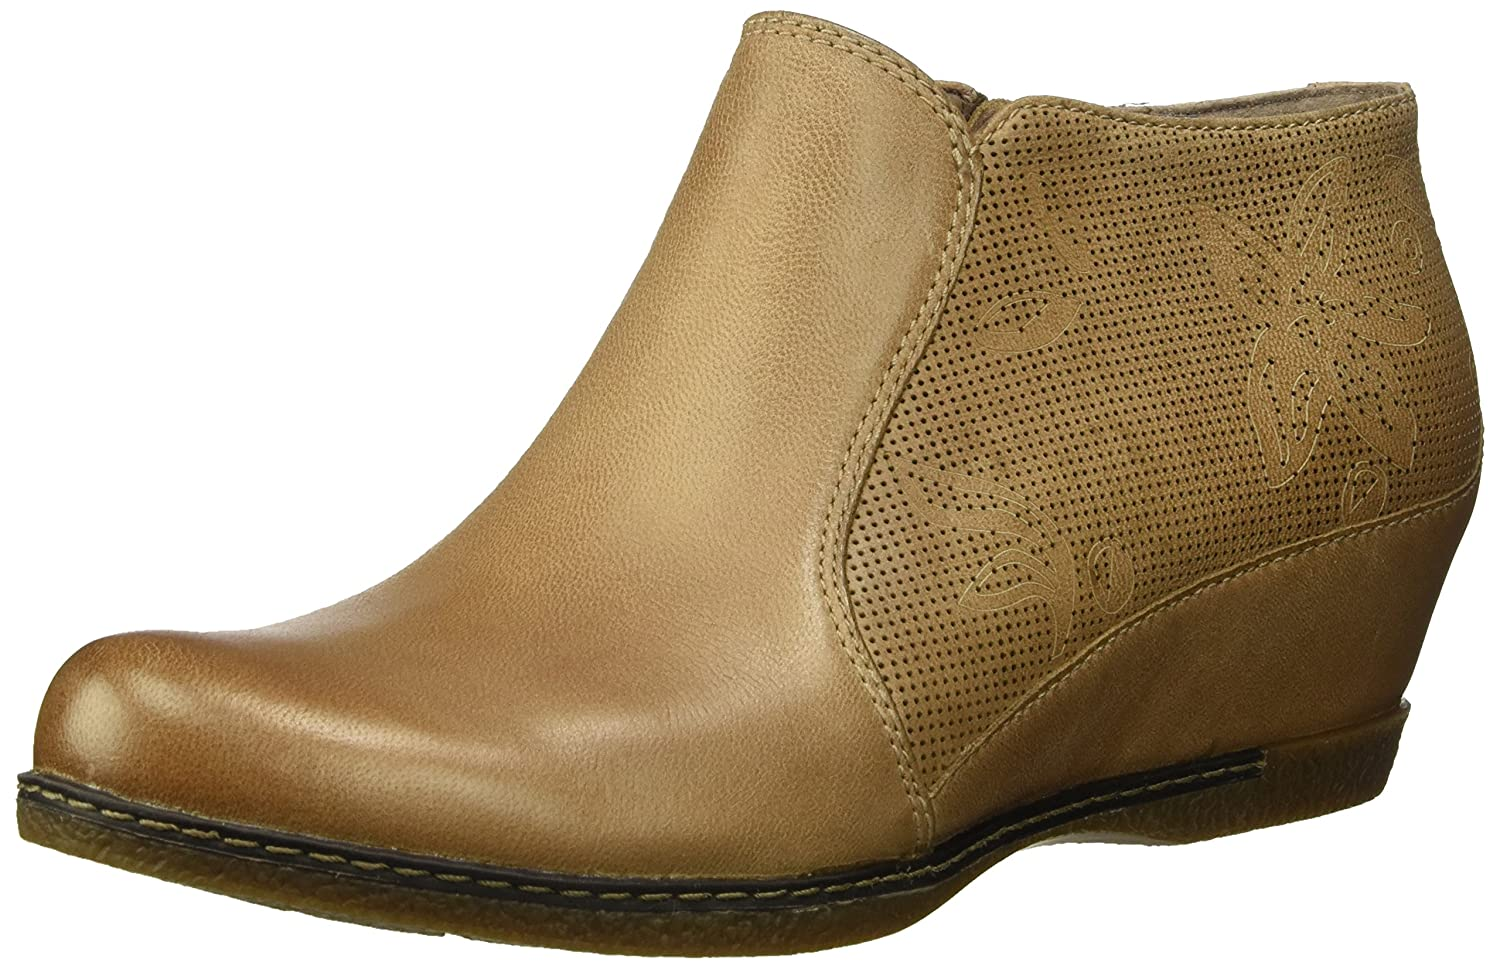 Dansko Women's Luann Ankle Boot B072WG774Y 37 M EU (6.5-7 US)|Taupe Burnished Nubuck